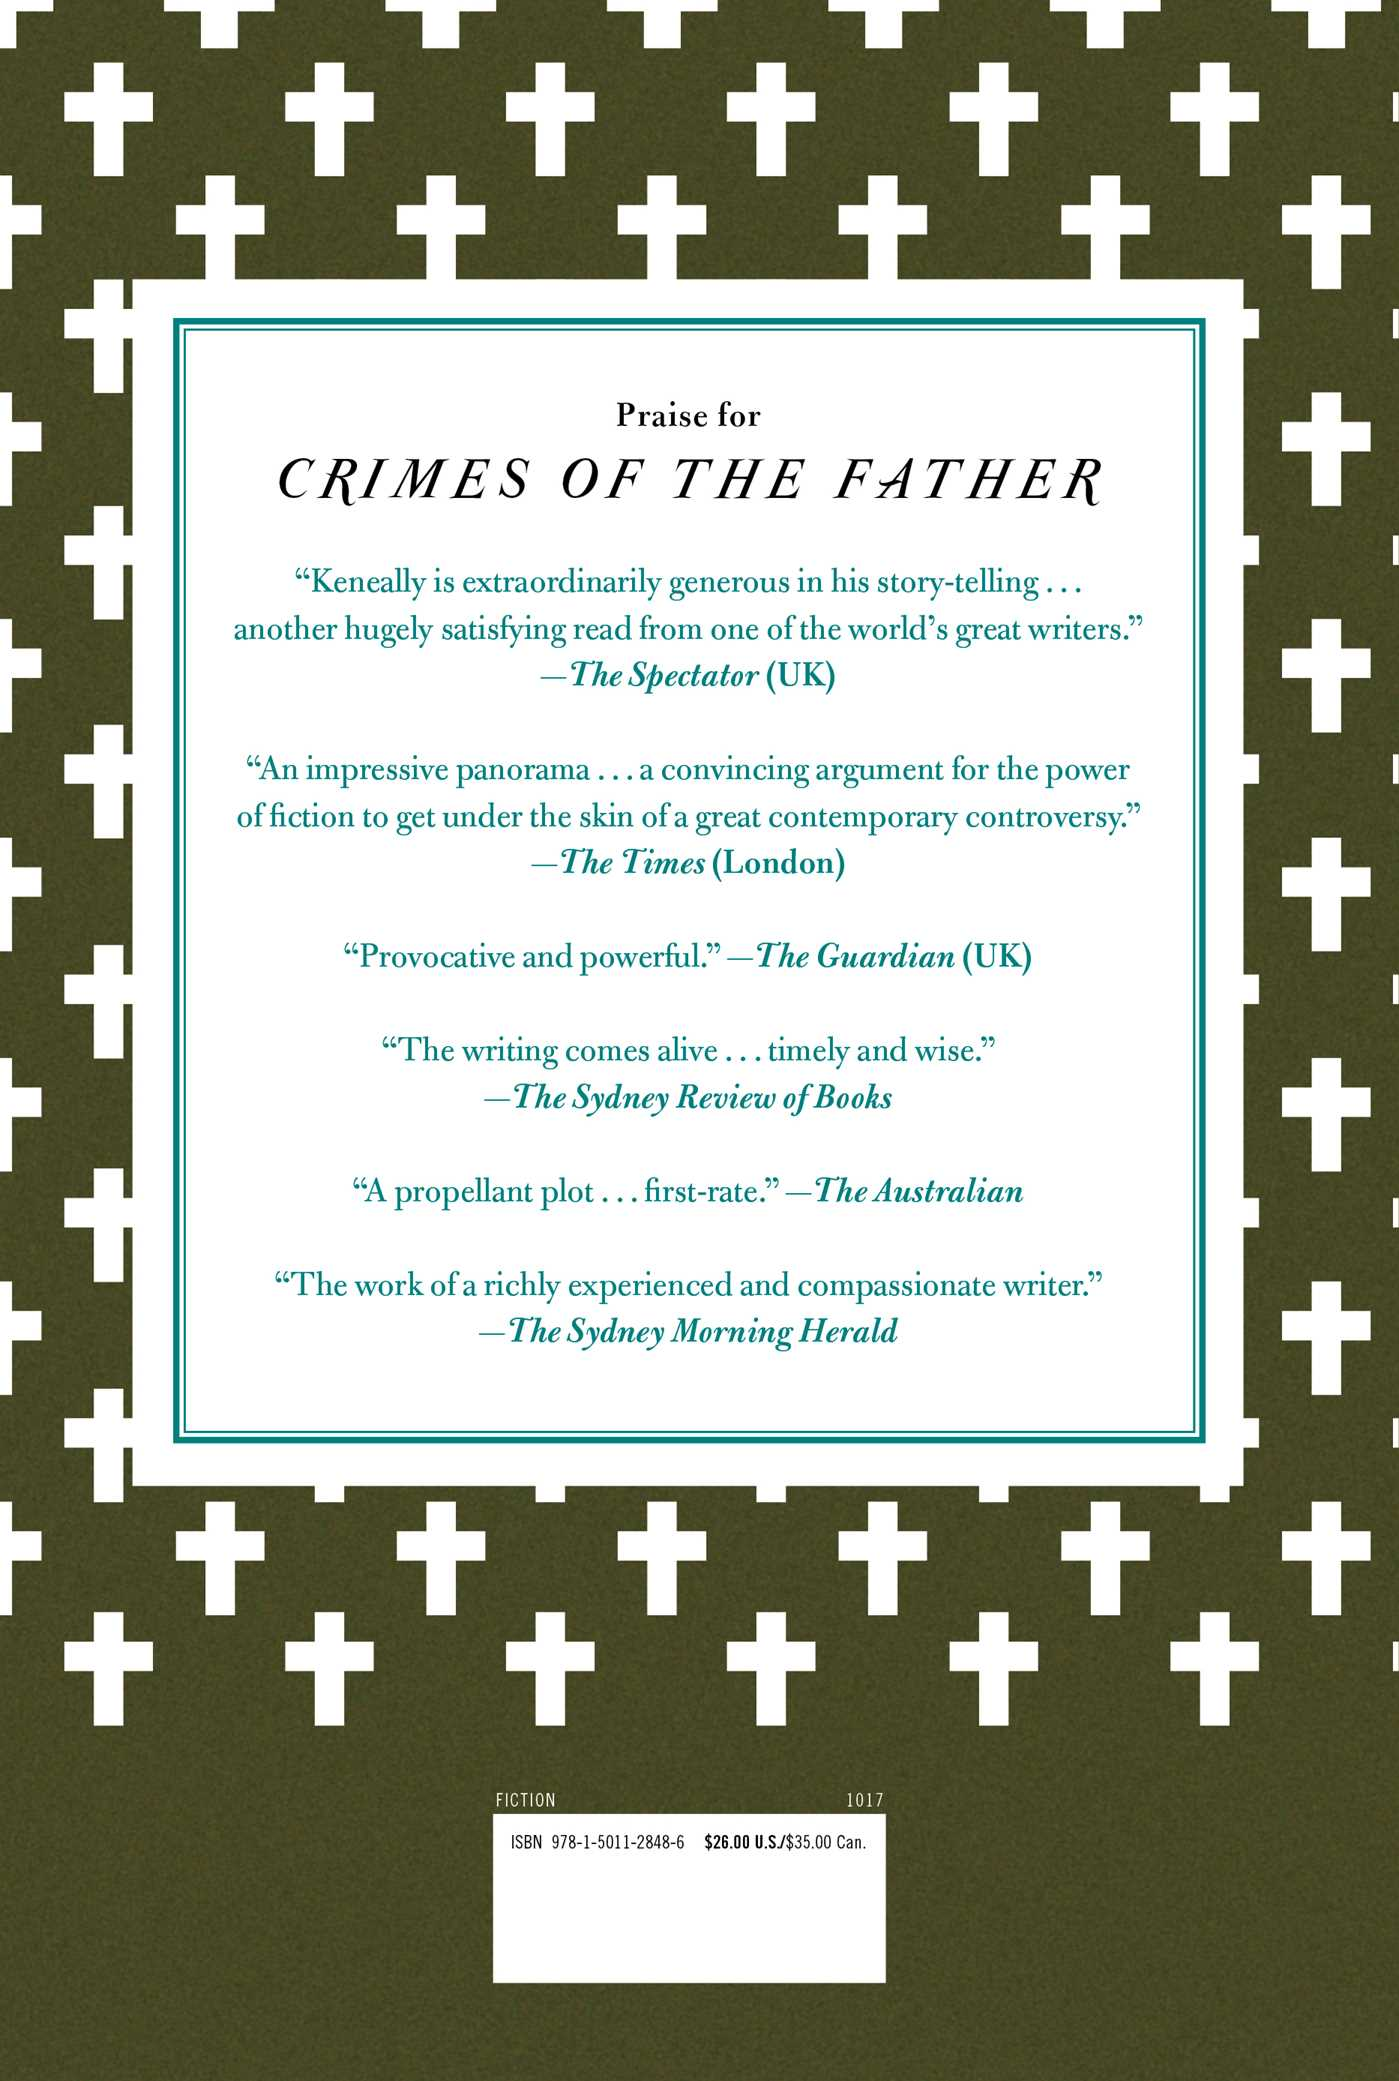 Crimes of the father 9781501128486 hr back